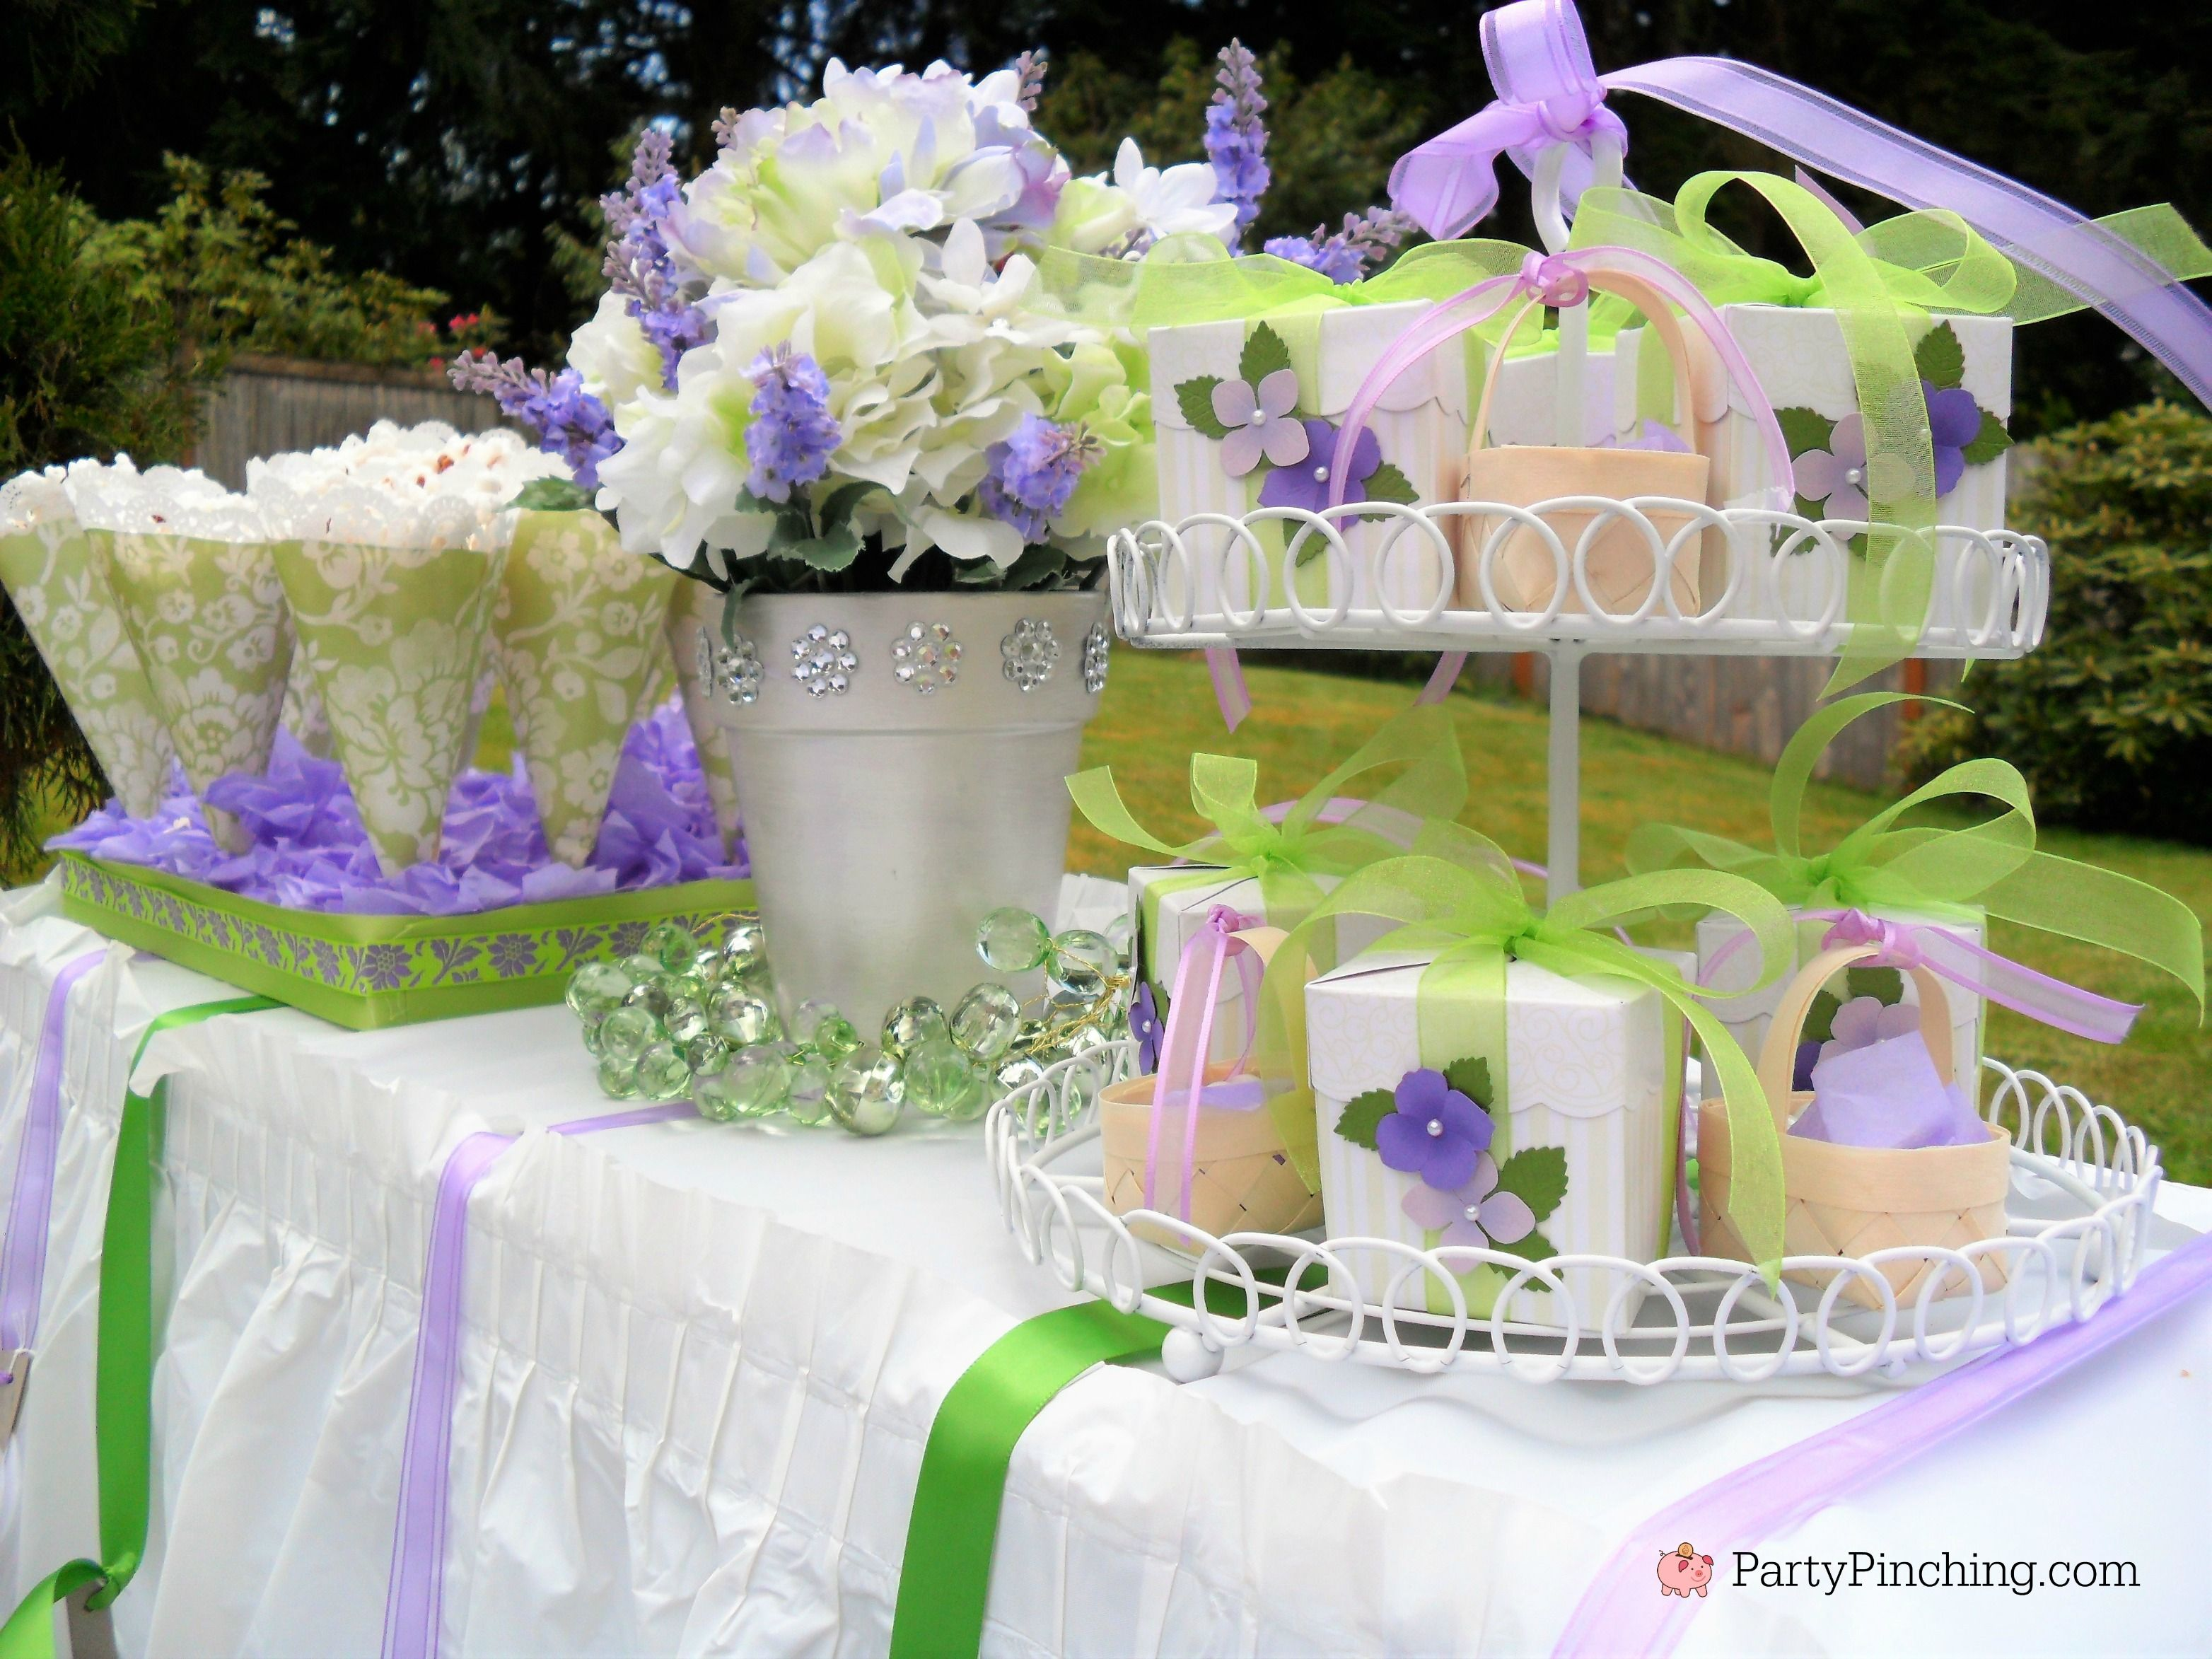 bridal shower ideas budget friendly inexpensive bridal shower luncheon garden outdoor patio bridal shower lavender bridal shower pretty purple lunch